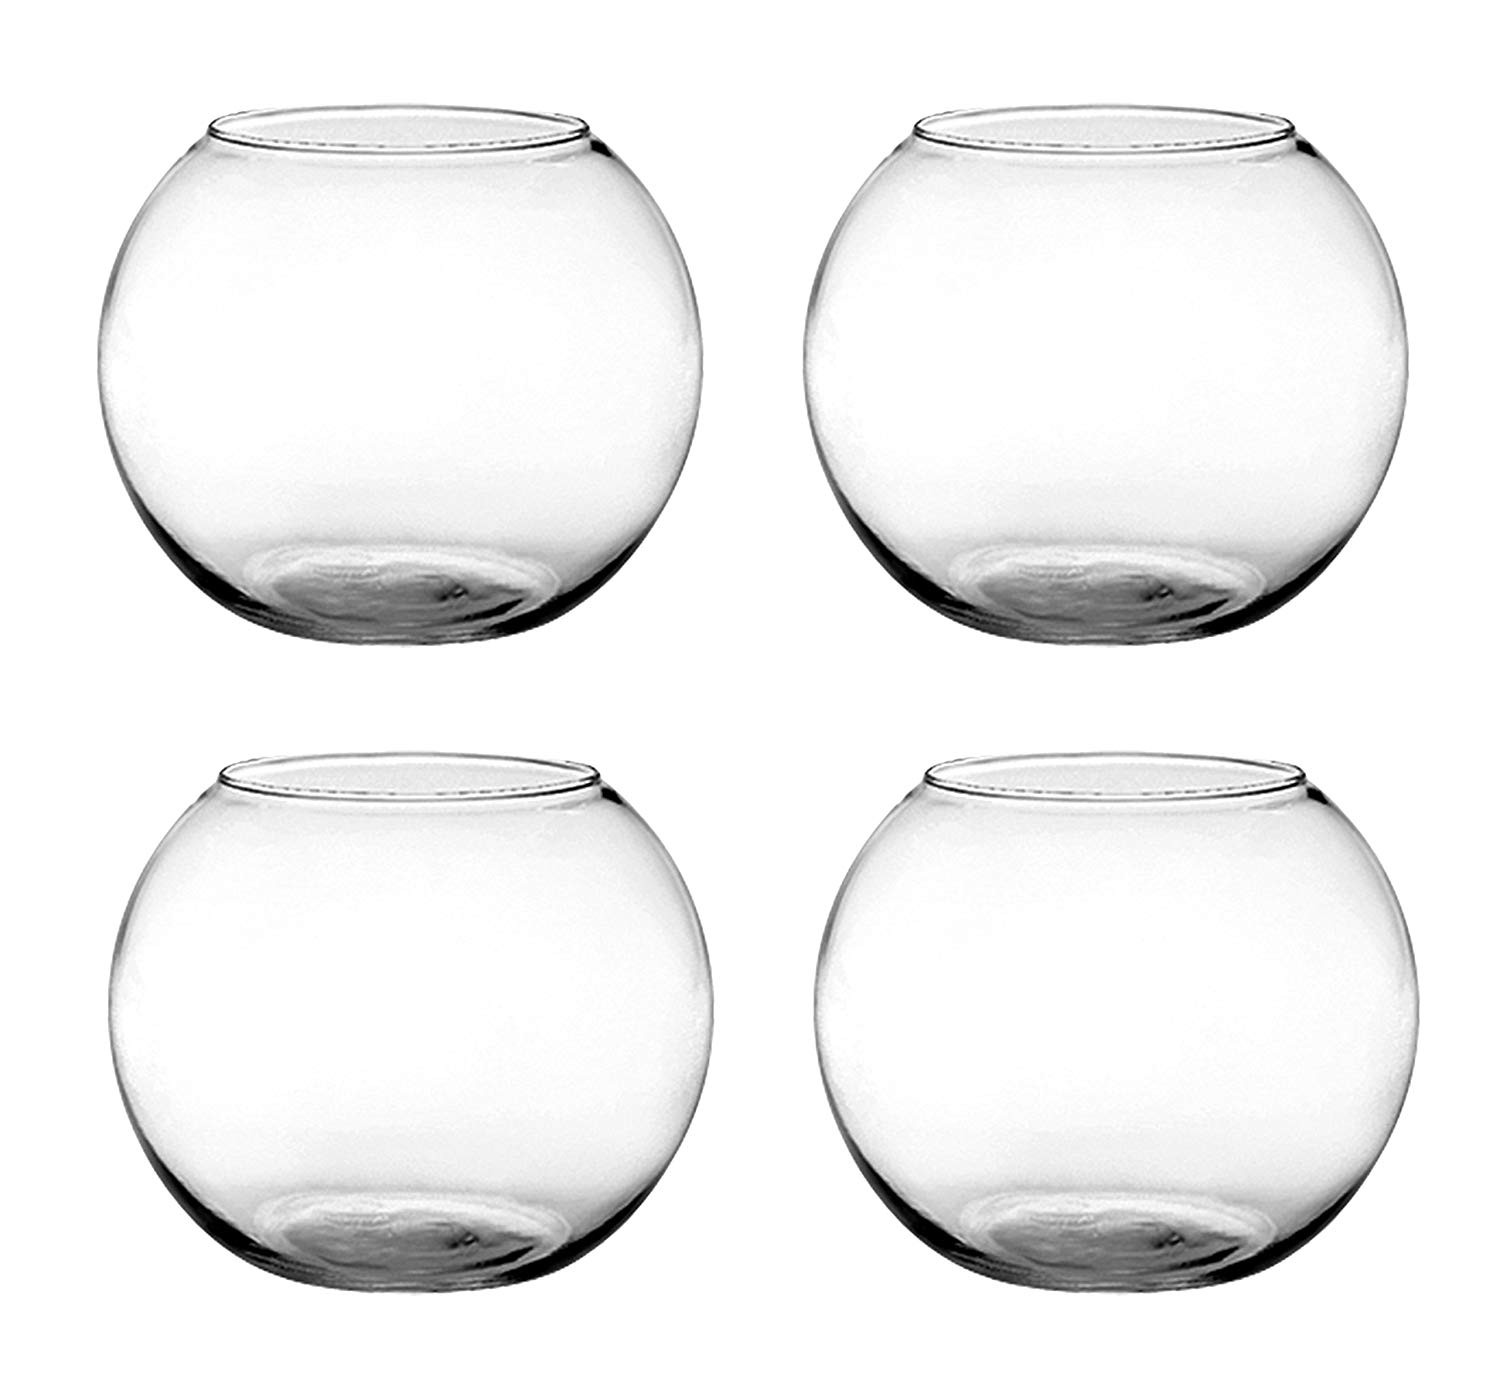 crystal flower vases for sale of amazon com set of 4 syndicate sales 6 inches clear rose bowl regarding amazon com set of 4 syndicate sales 6 inches clear rose bowl bundled by maven gifts garden outdoor